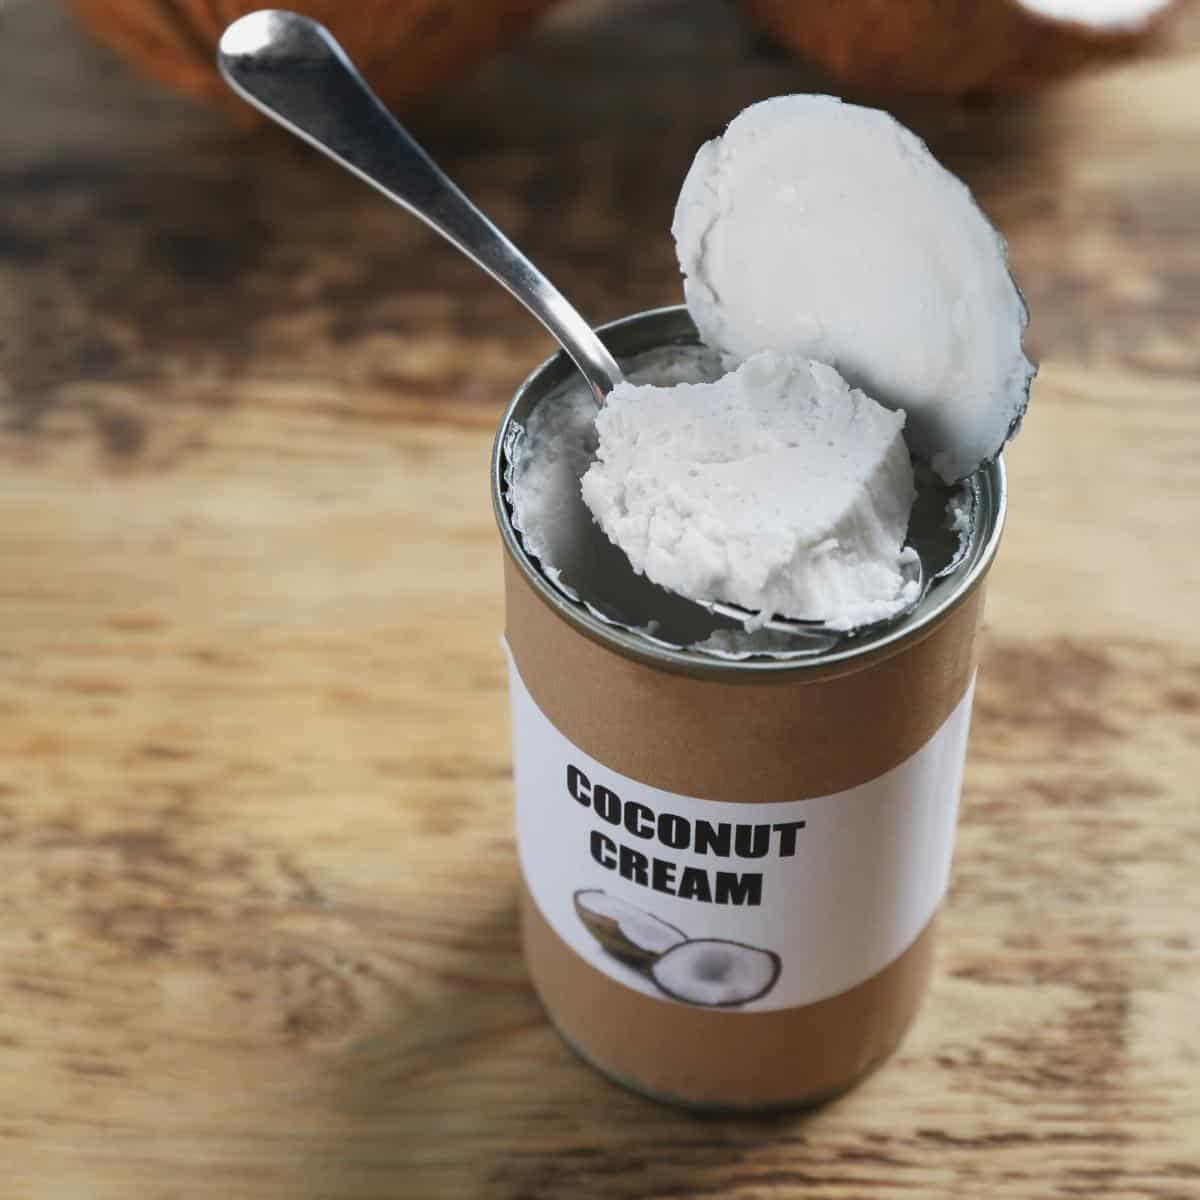 A can of thick coconut cream